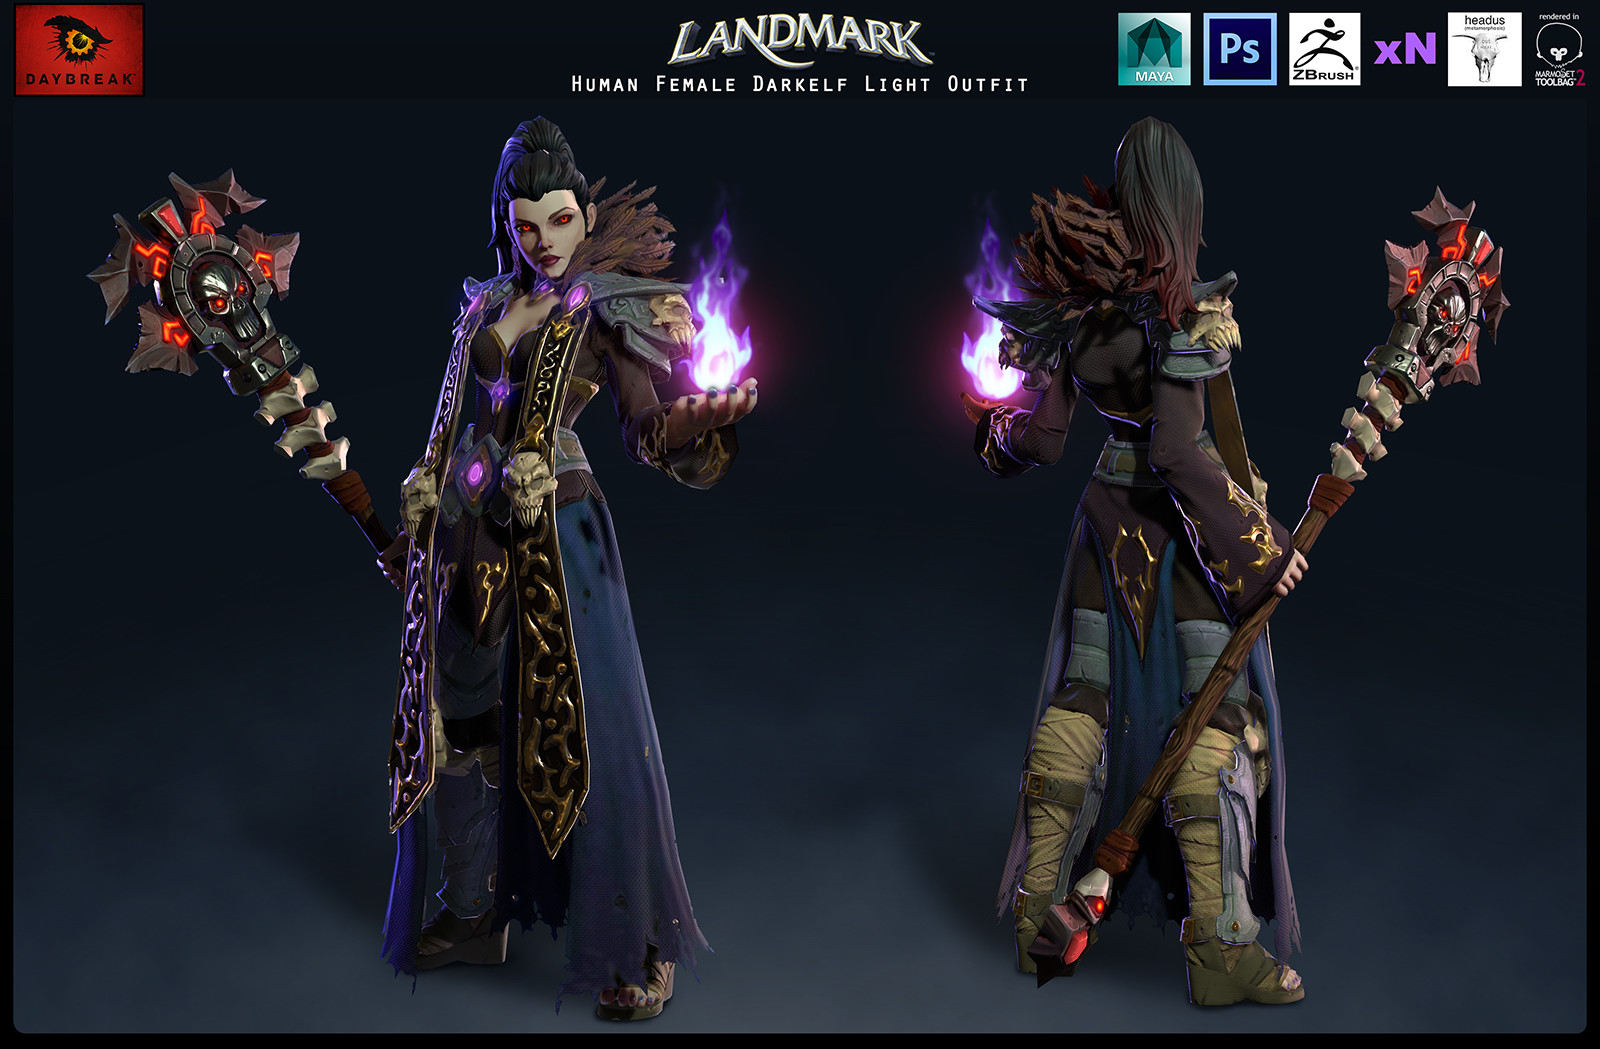 Human Female Darkelf Light Outfit